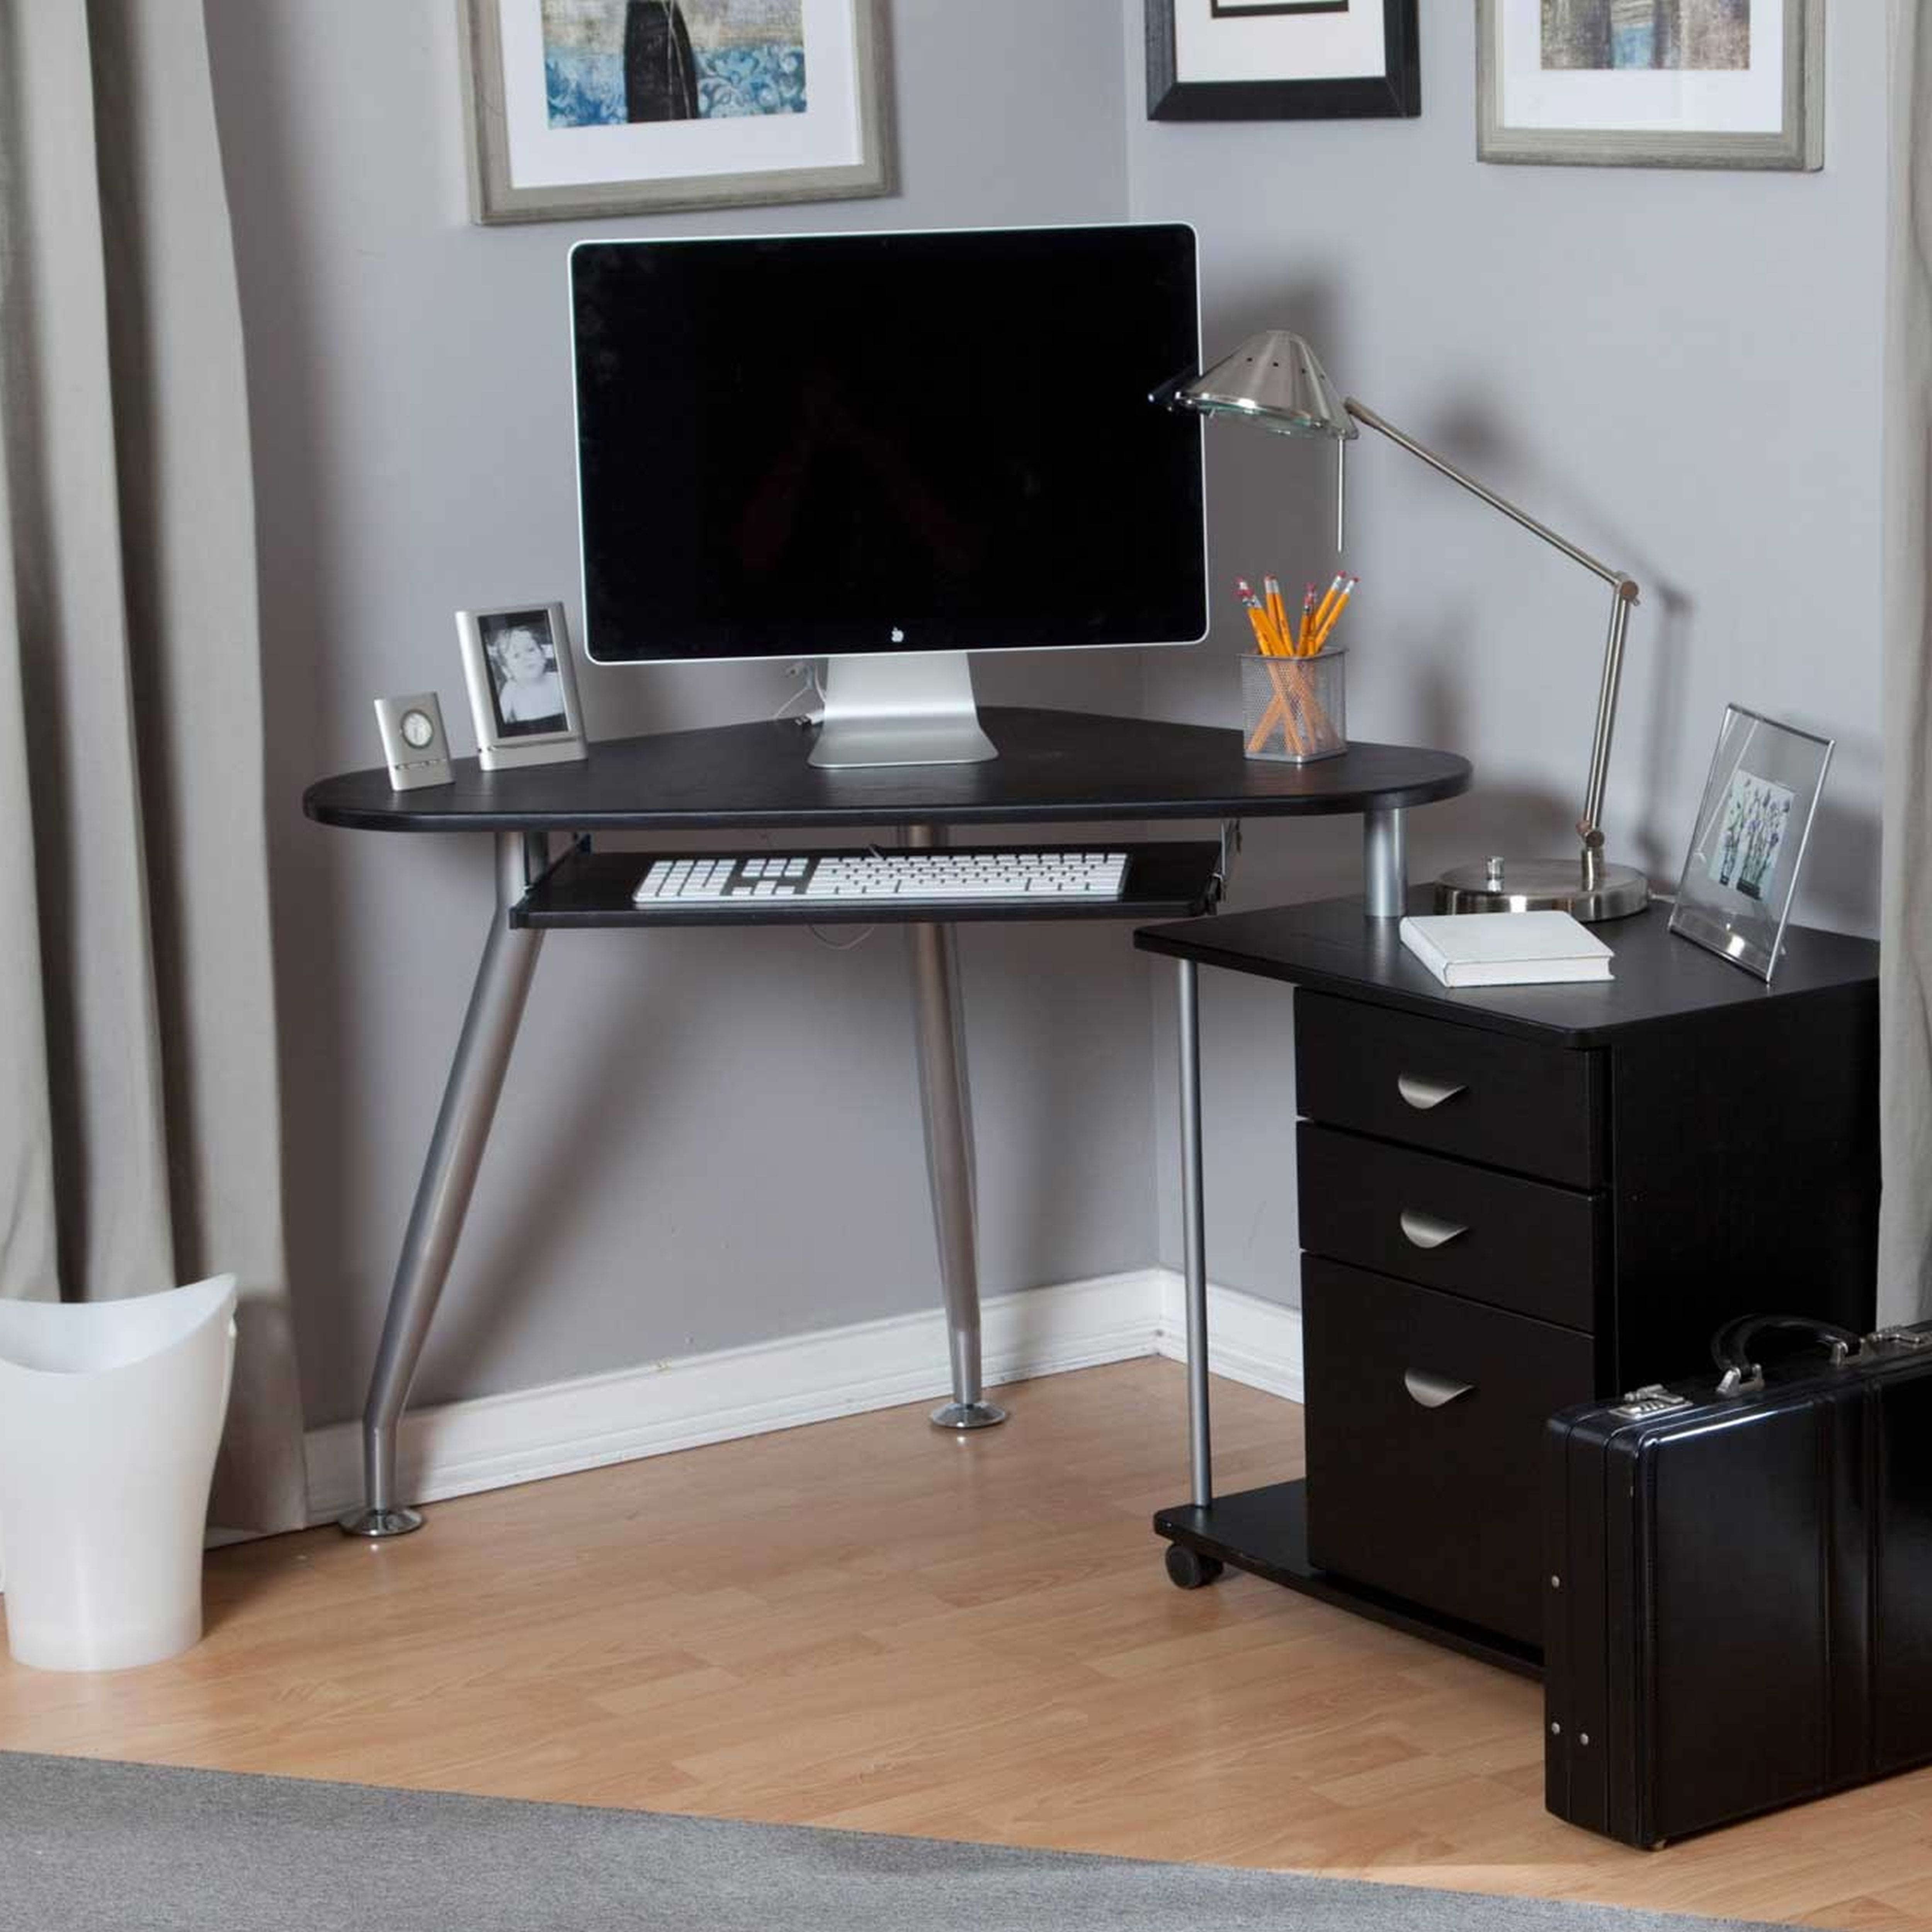 Modern Grey Painted Iron Laminated Small Corner Computer Desk Ideas With  Black Wood Storage Plus Tetured Floor